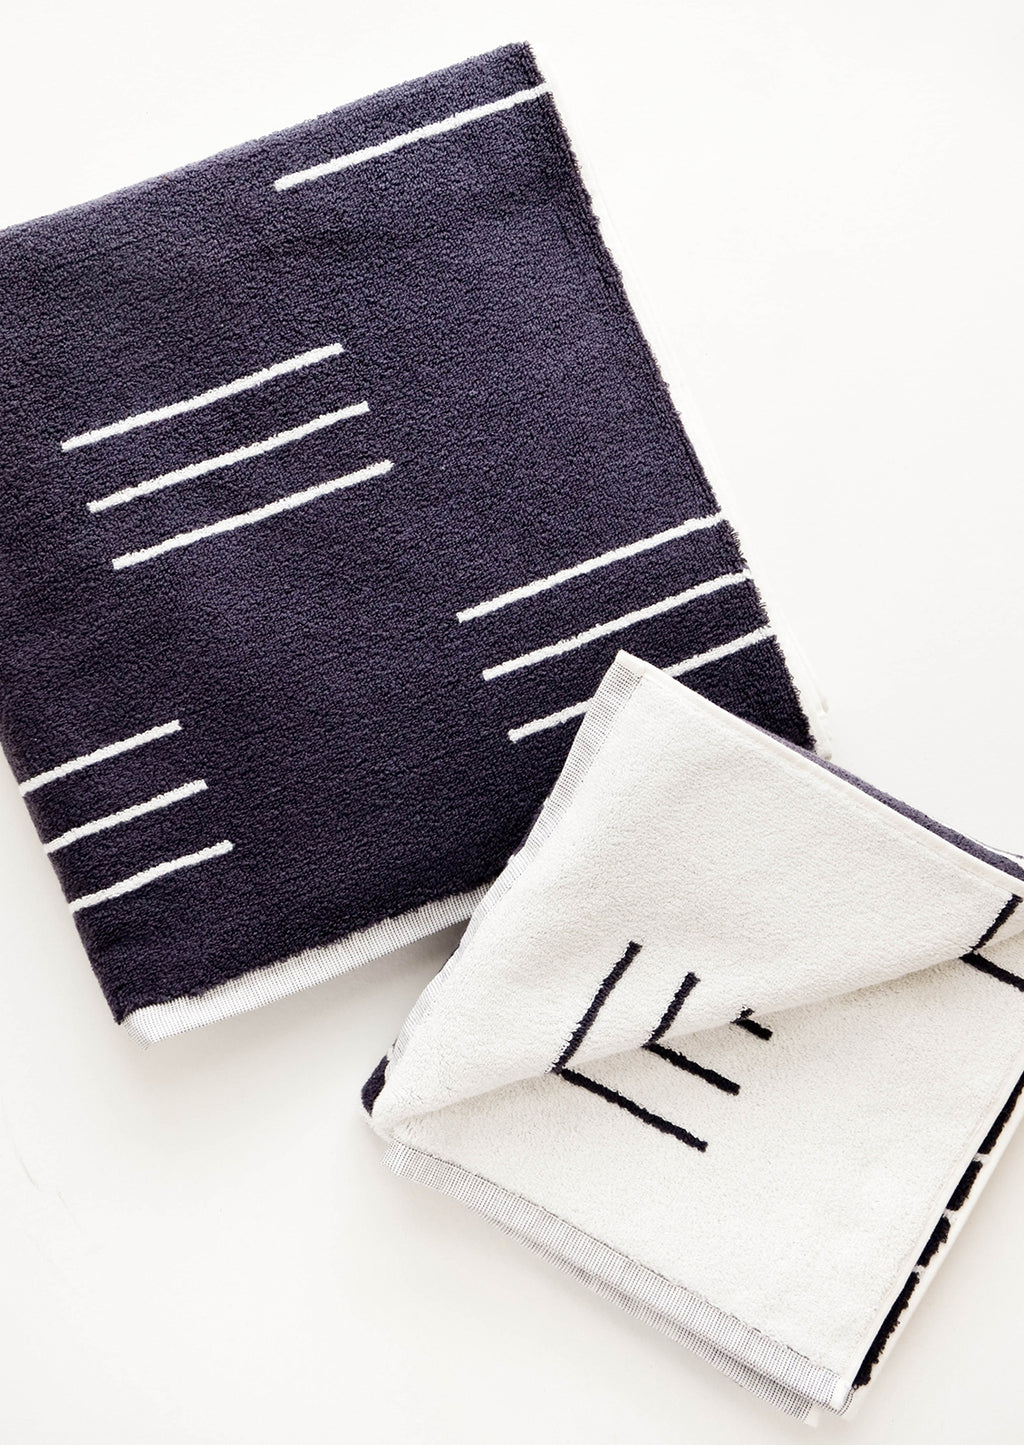 Charcoal Dash / Bath Towel: Set of reversible jacquard weave terrycloth towels in dark grey with modern white line print